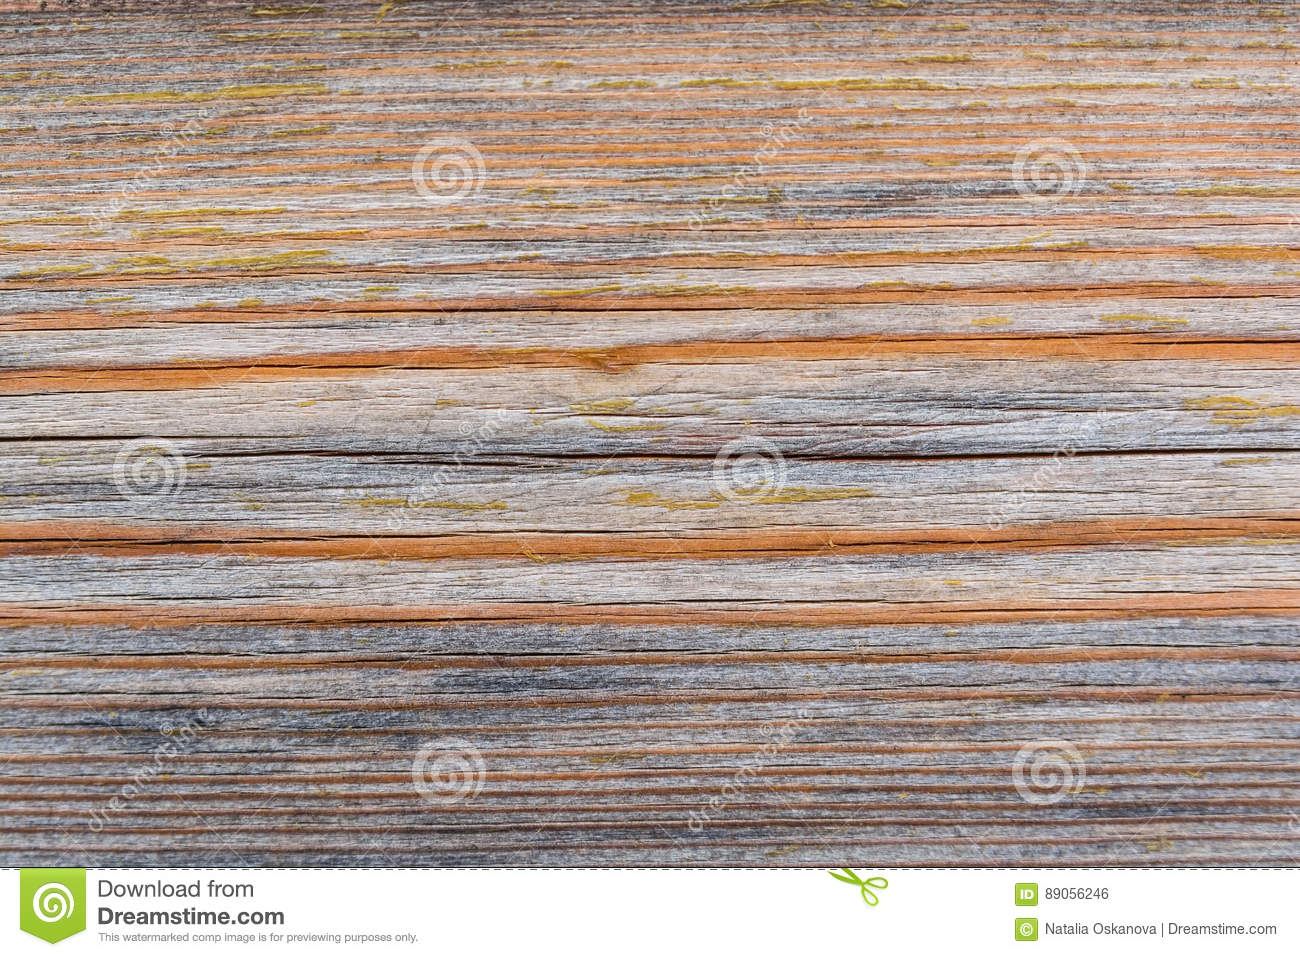 Download High Resolution Old Wooden Texture Stock Photo